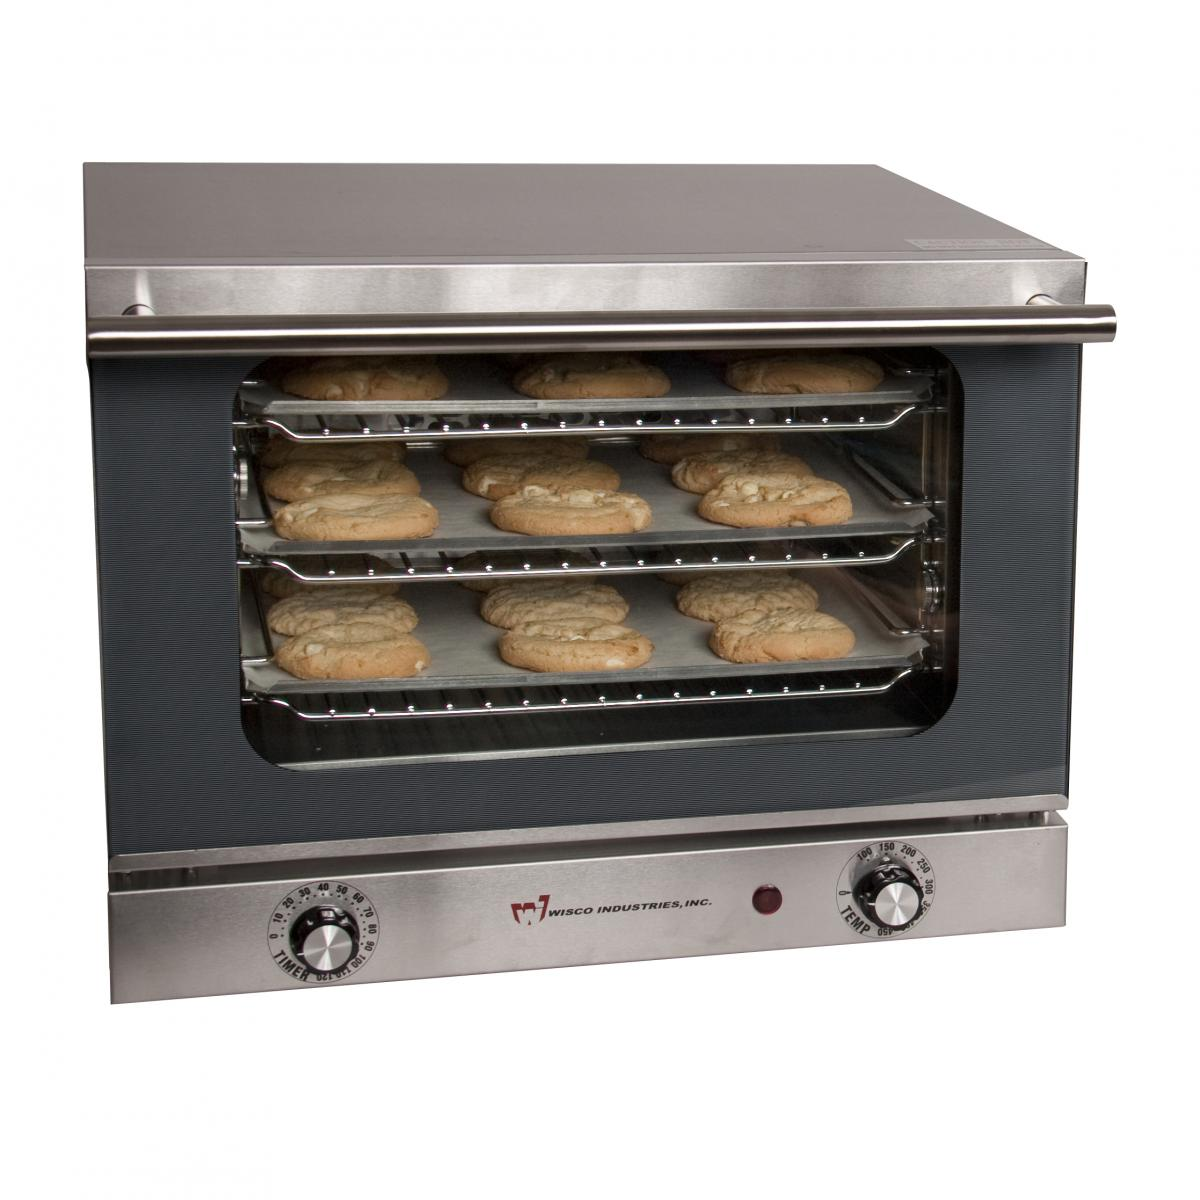 Convention Oven Wisco 620 Analog Convection Oven Foodpros